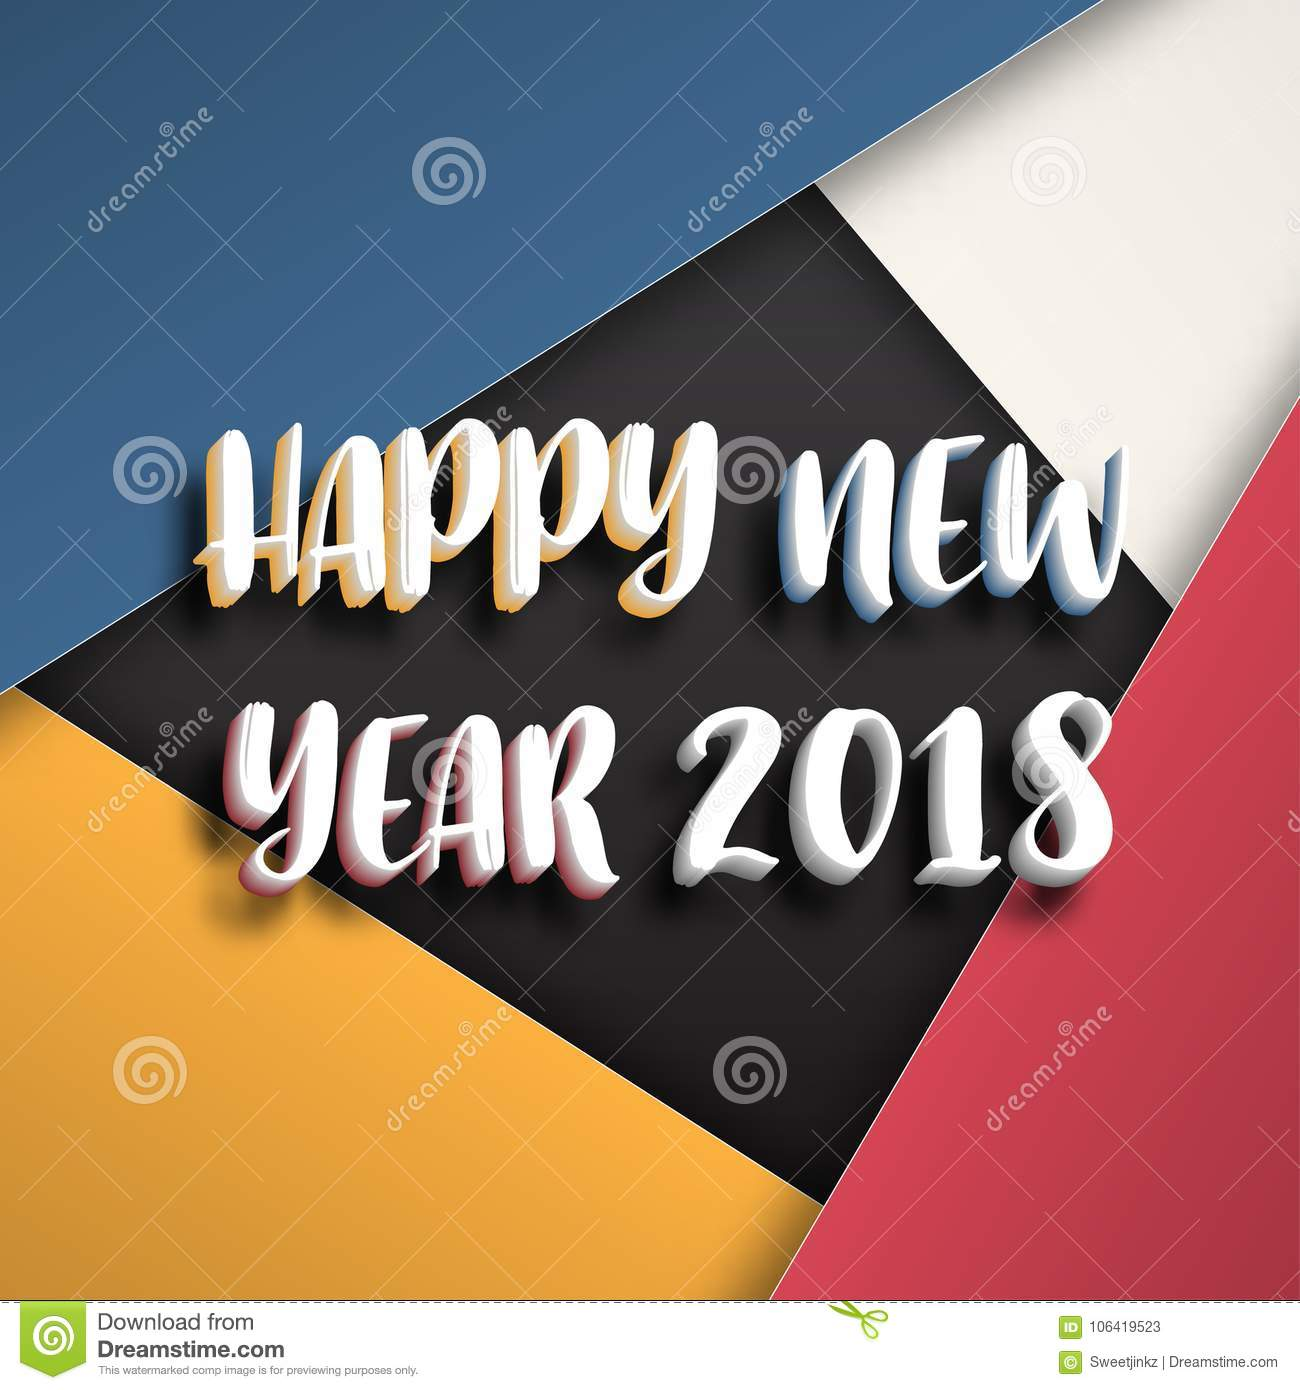 greeting card design template with modern text for 2018 new year